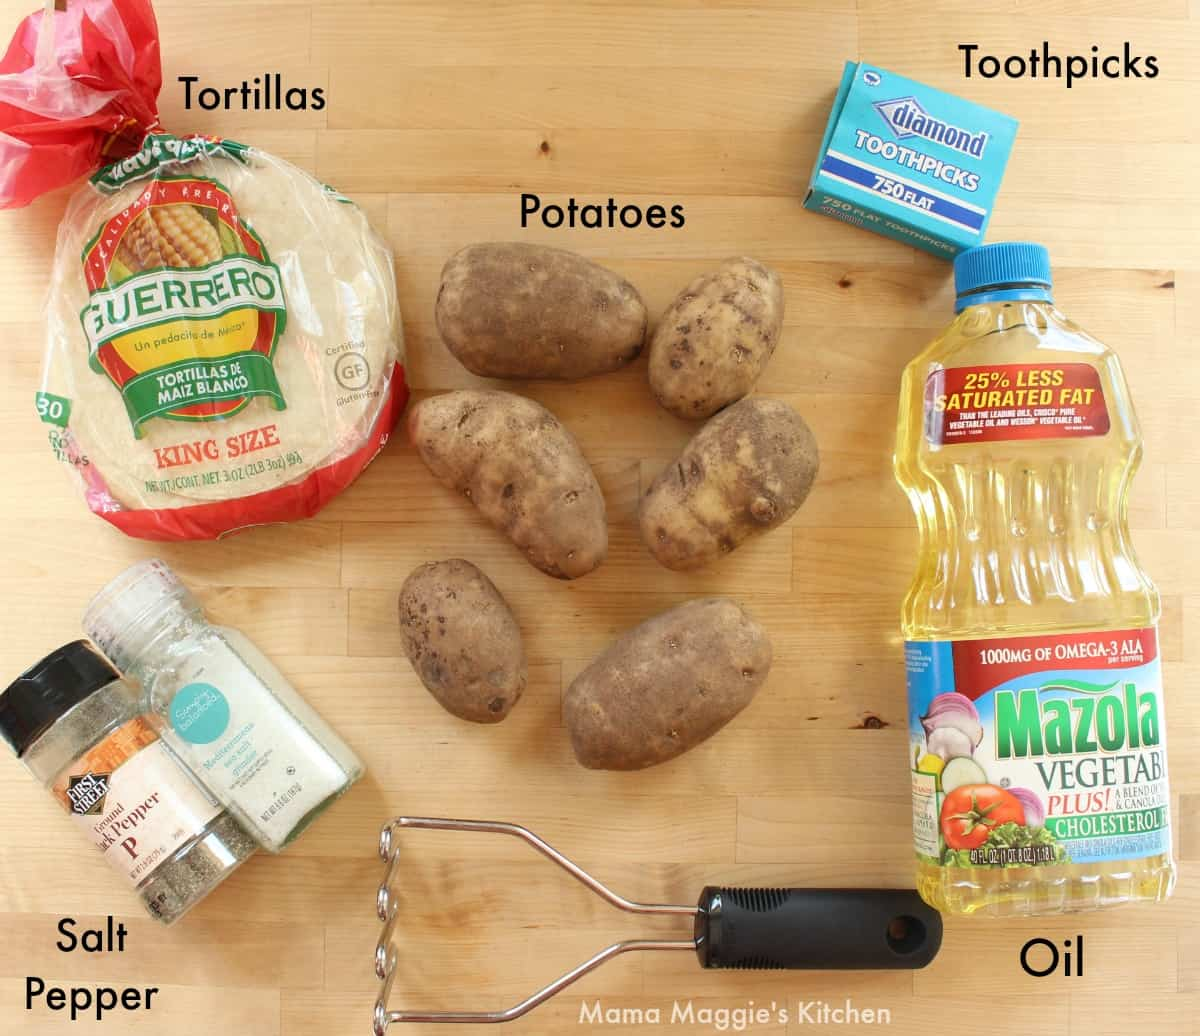 Ingredients for tacos dorados on a wooden surface.